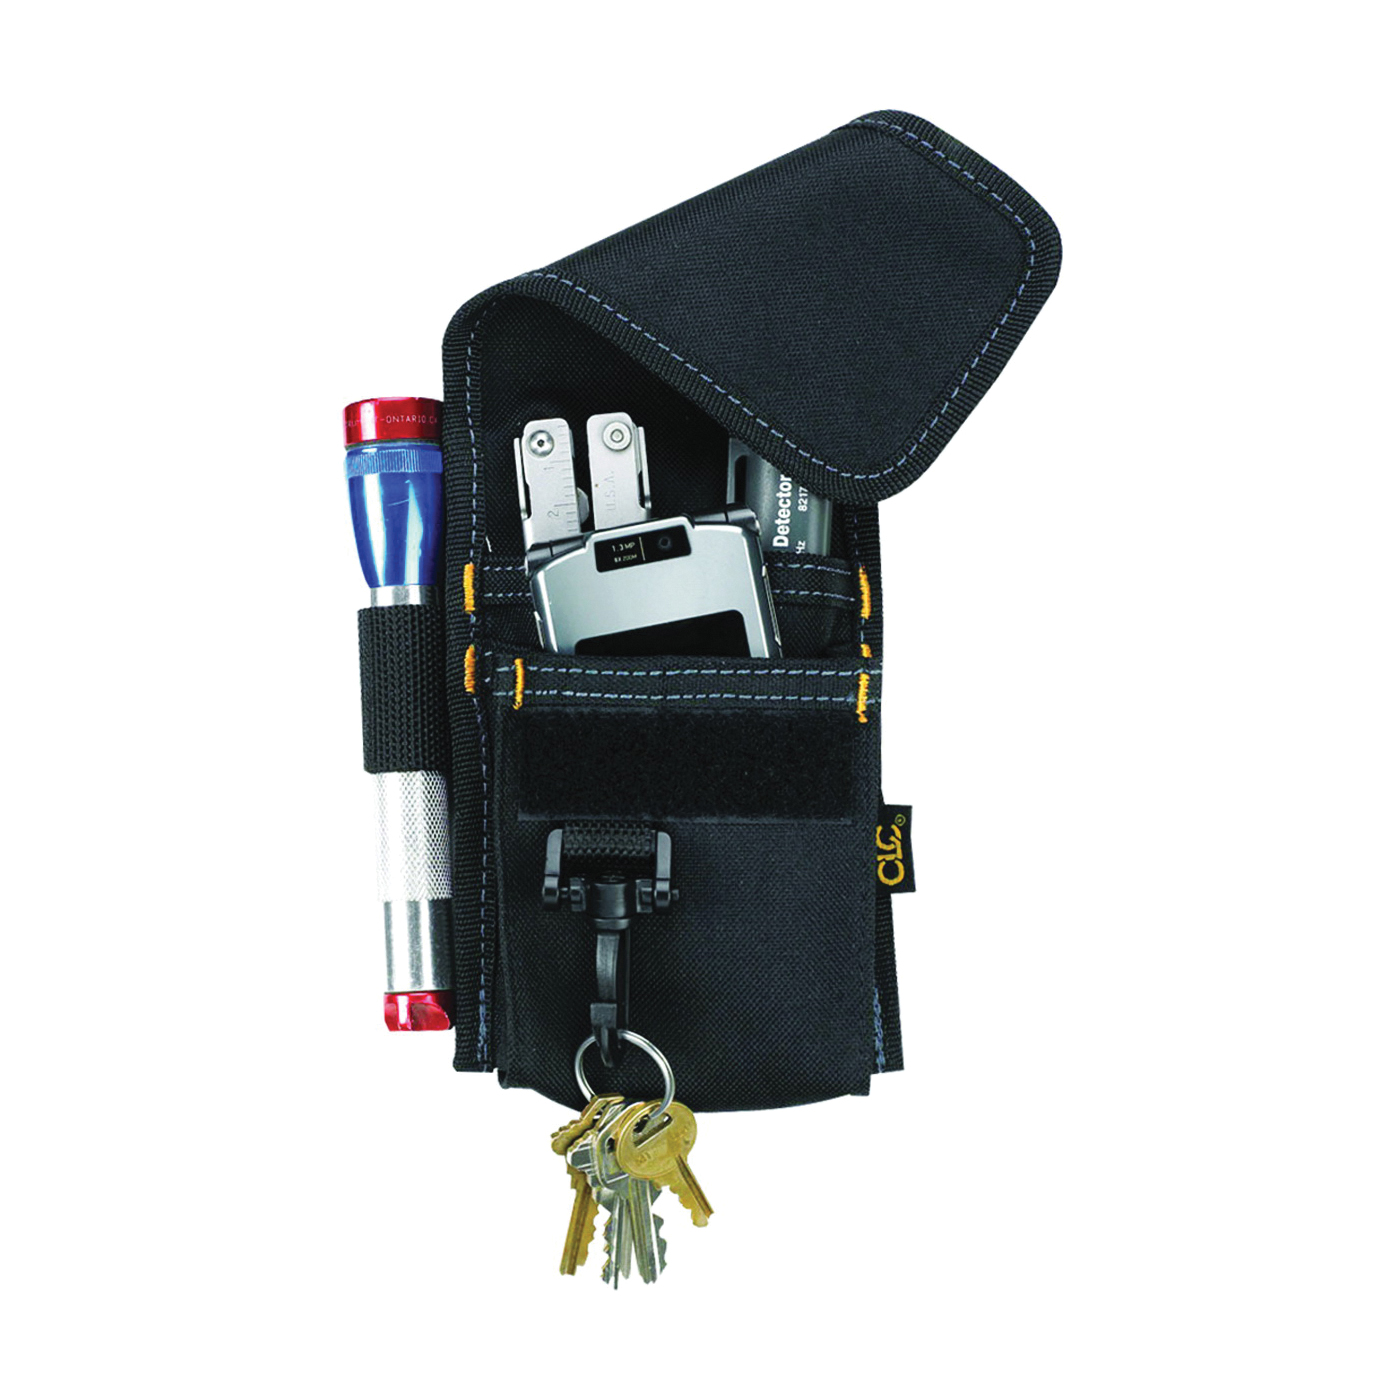 Picture of CLC Tool Works 1104 Multi-Purpose Tool Holder, 4 -Pocket, Polyester, Black, 3 in W, 7-1/4 in H, 1 in D